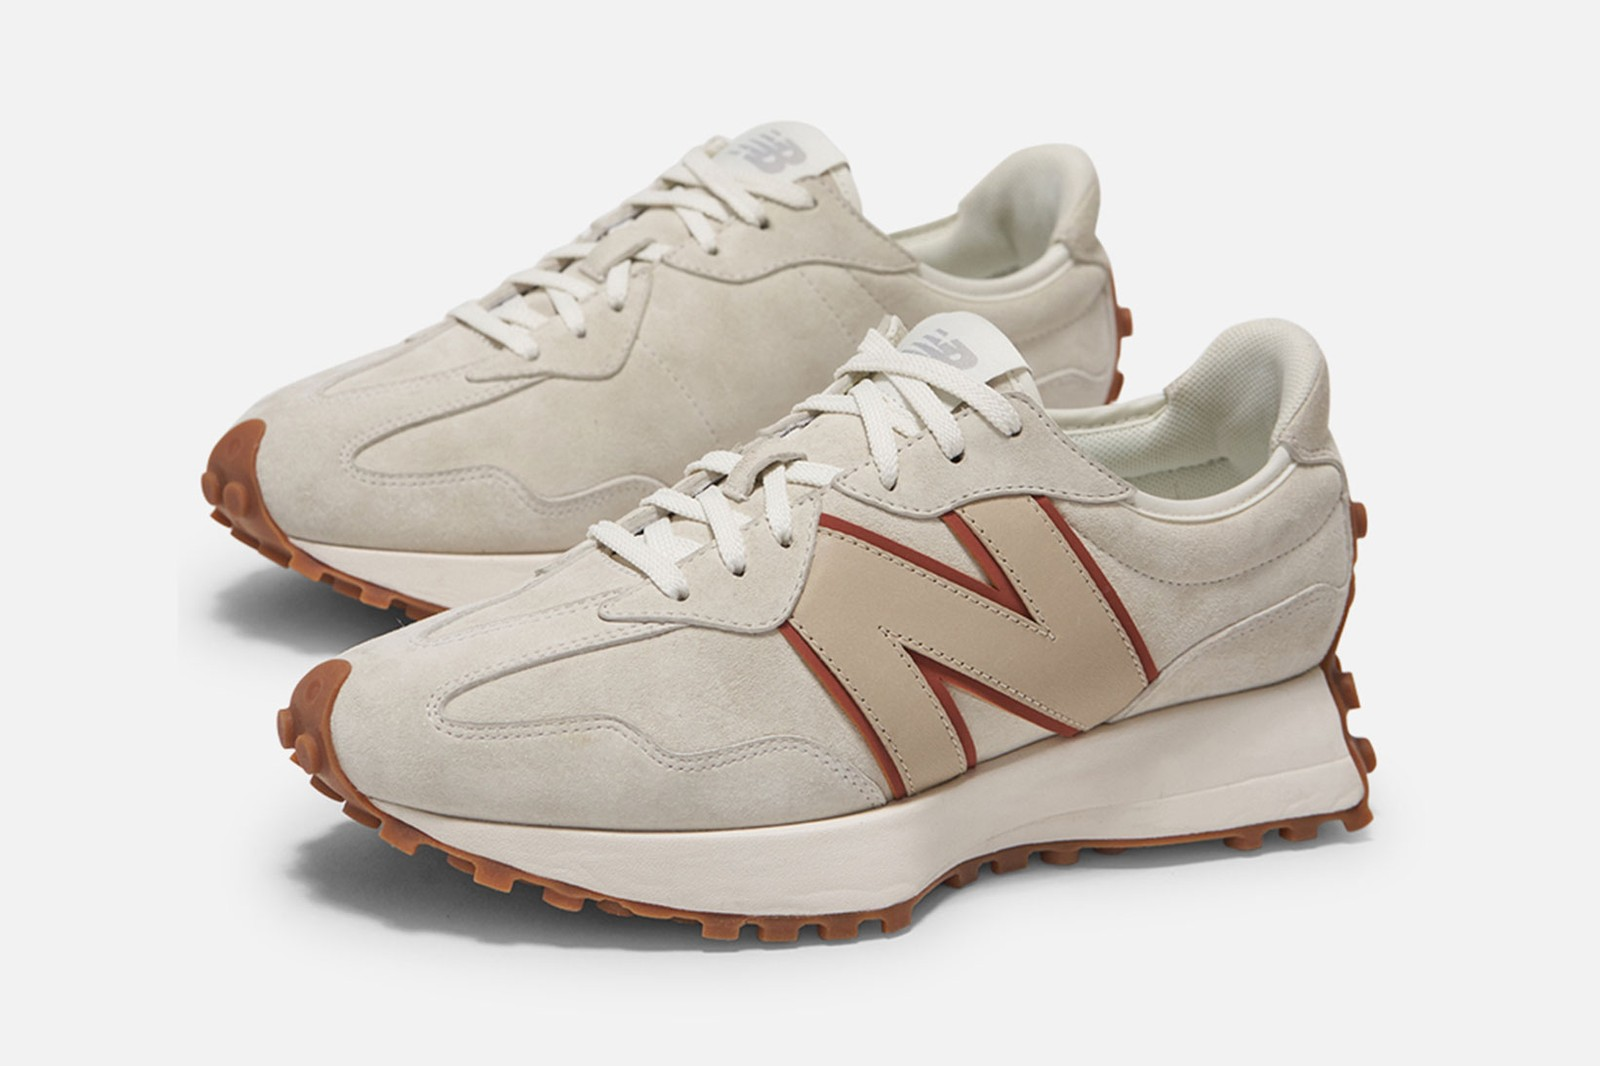 New Balance Bandier Collaboration 327 57/40 Sneakers Athleisure Sportswear Release Date Info